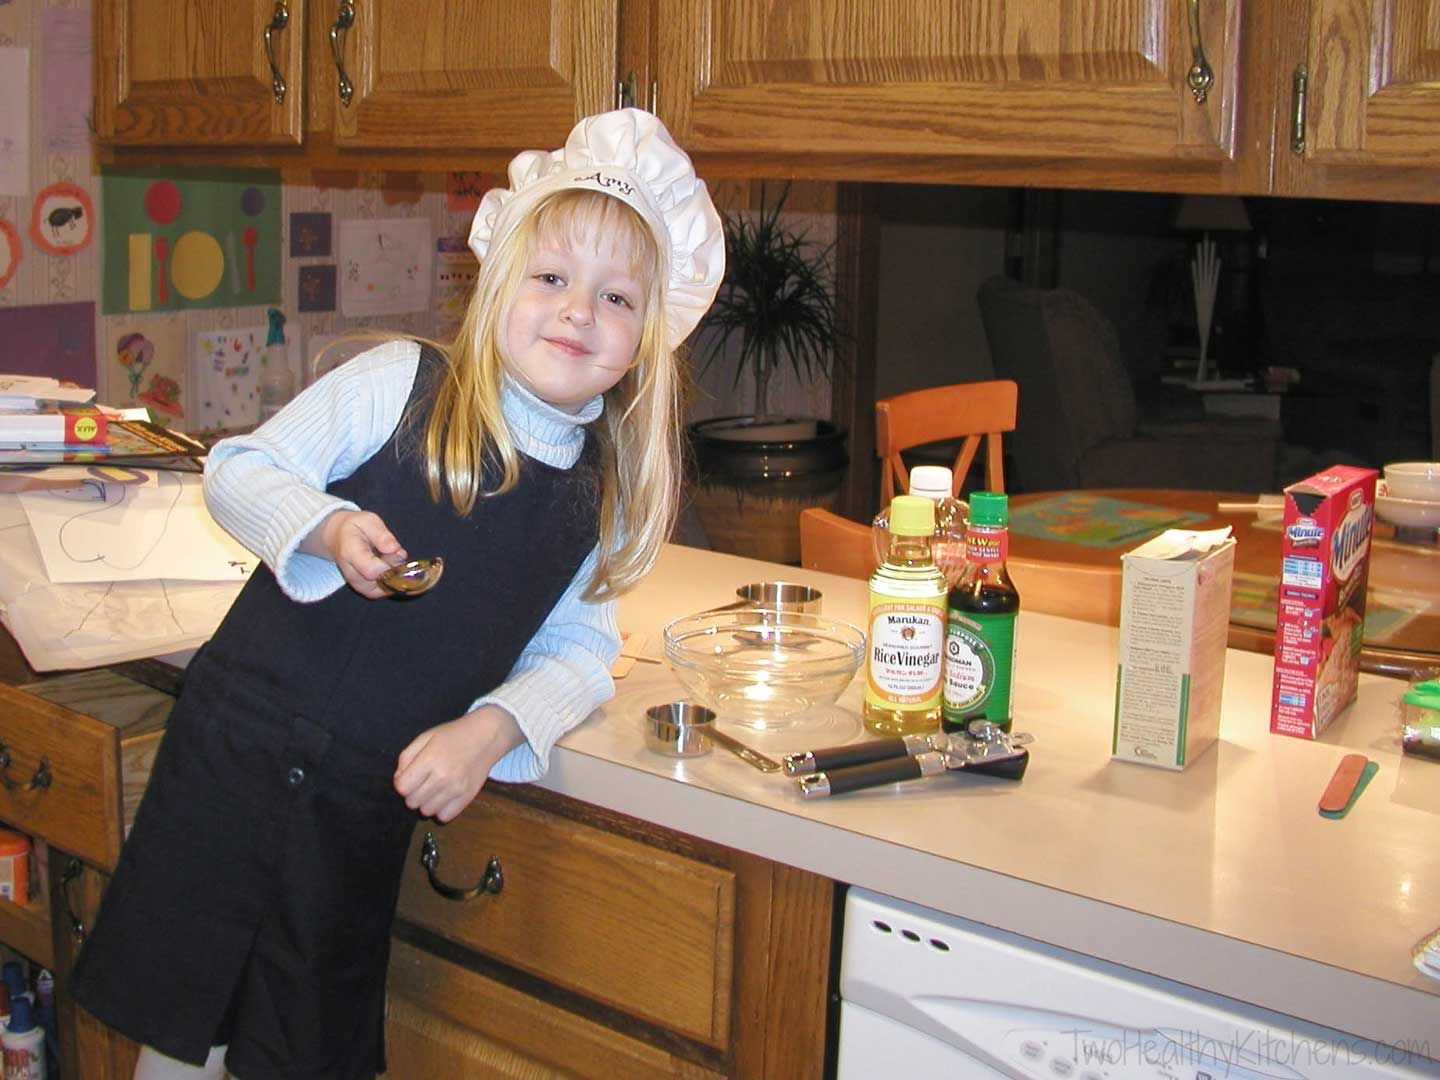 Even as a little girl, I loved to cook, but I feel like there's so much more for me to learn about cooking!